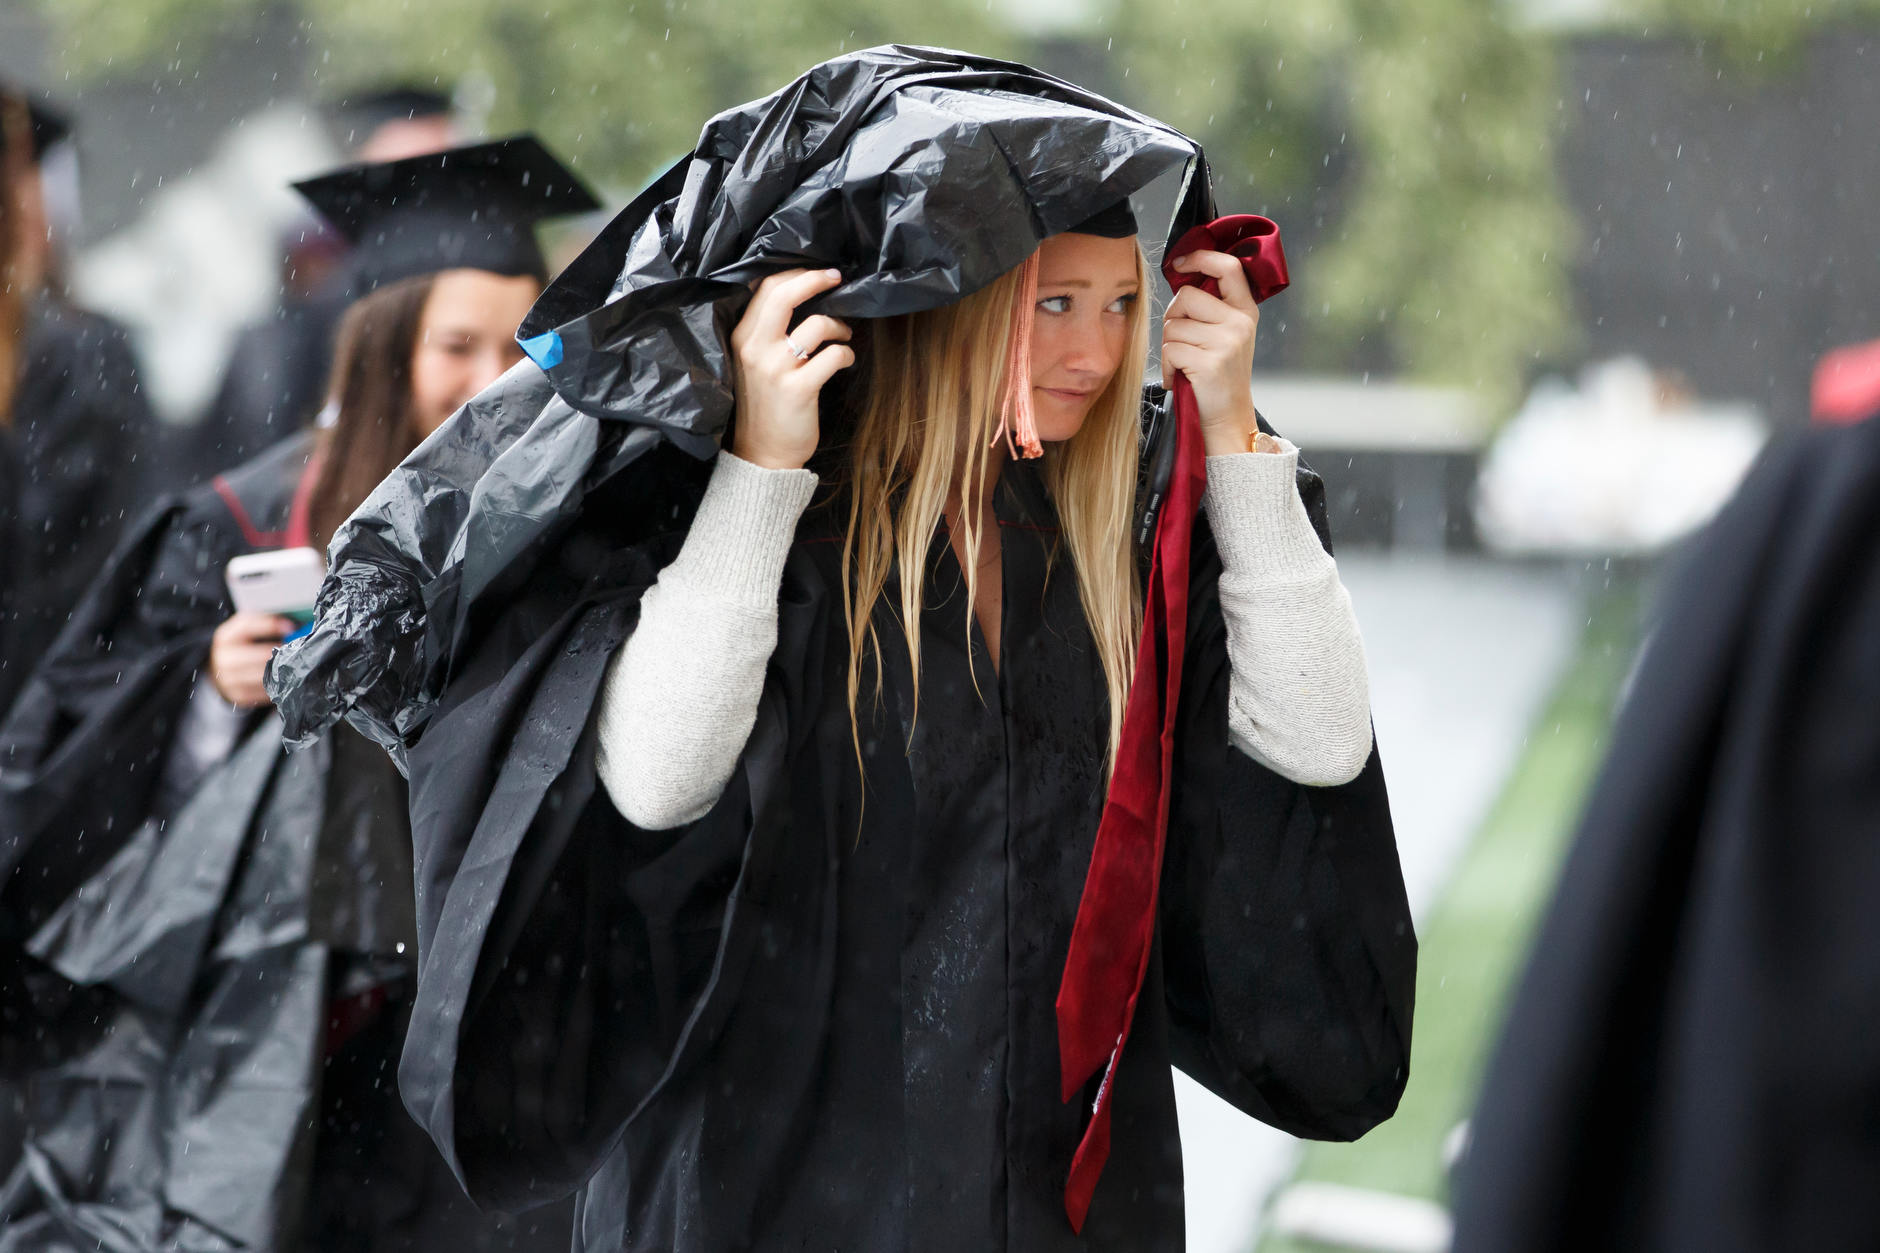 A graduate shields herself from the rain as she files into Mellencamp Pavilion before the Indiana University Bloomington Undergraduate Commencement on Saturday, May 4, 2019. (James Brosher/Indiana University)